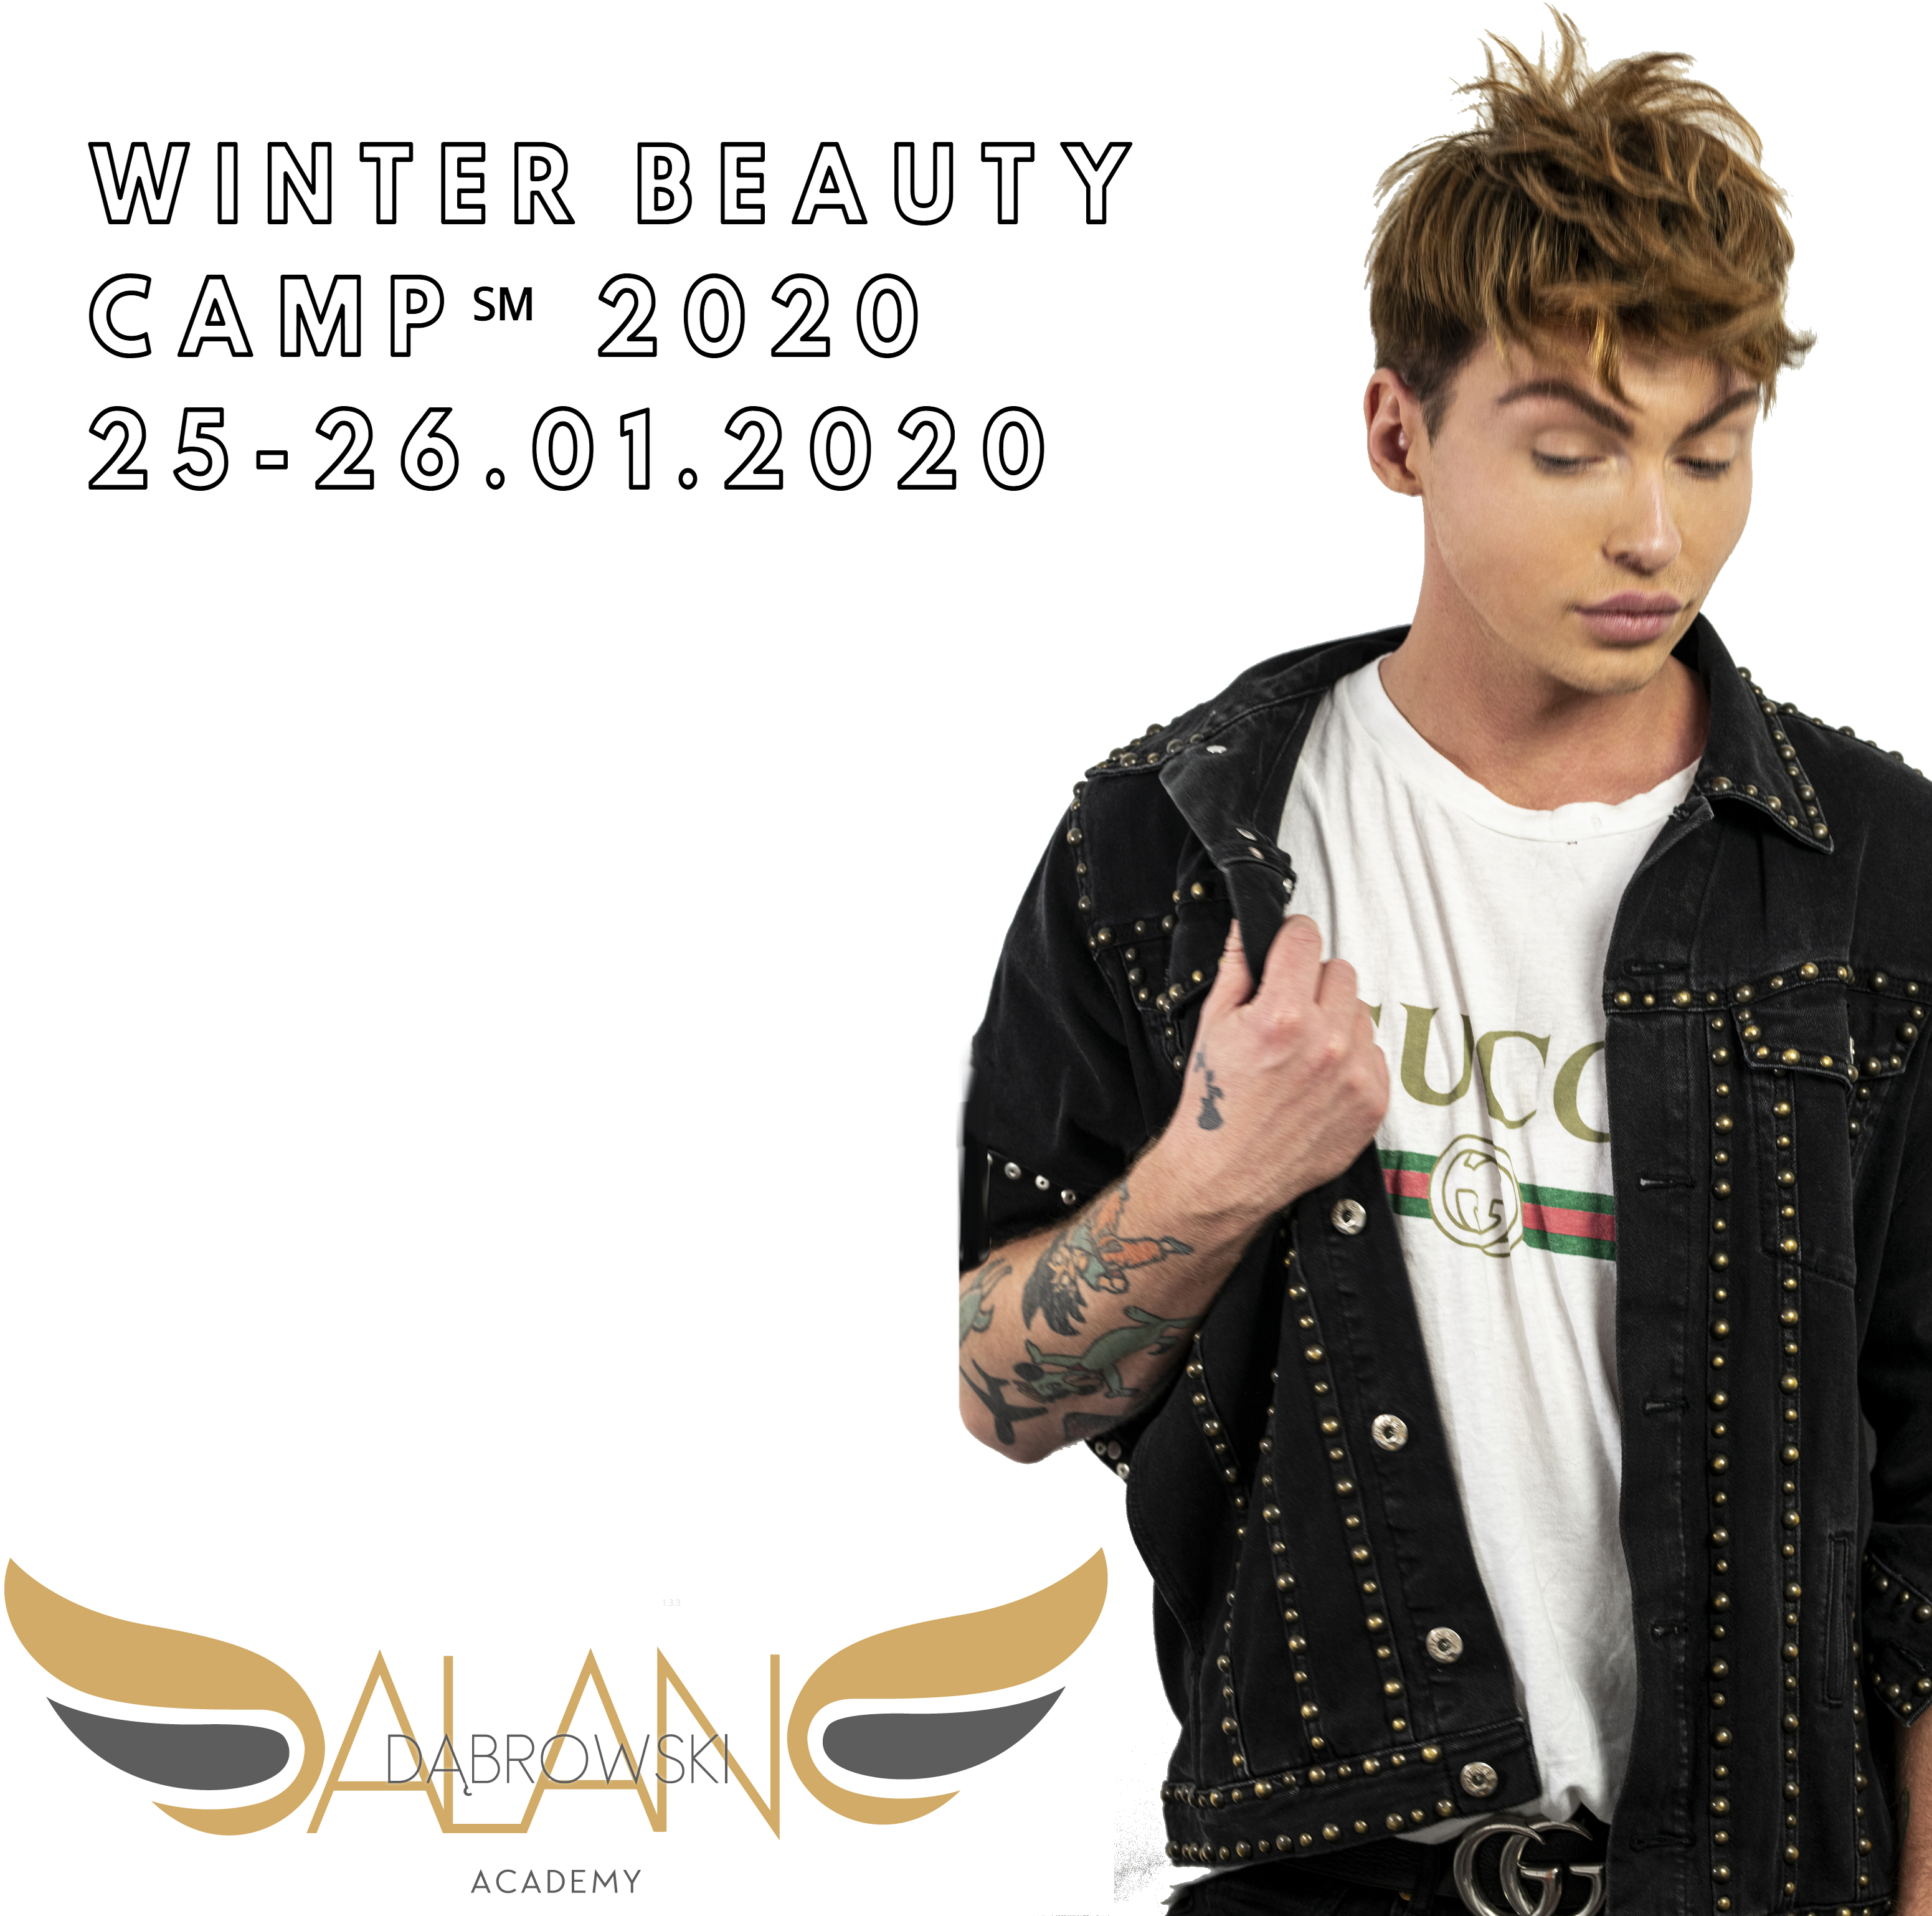 Winter Beauty Camp Tm. by Alan Dąbrowski